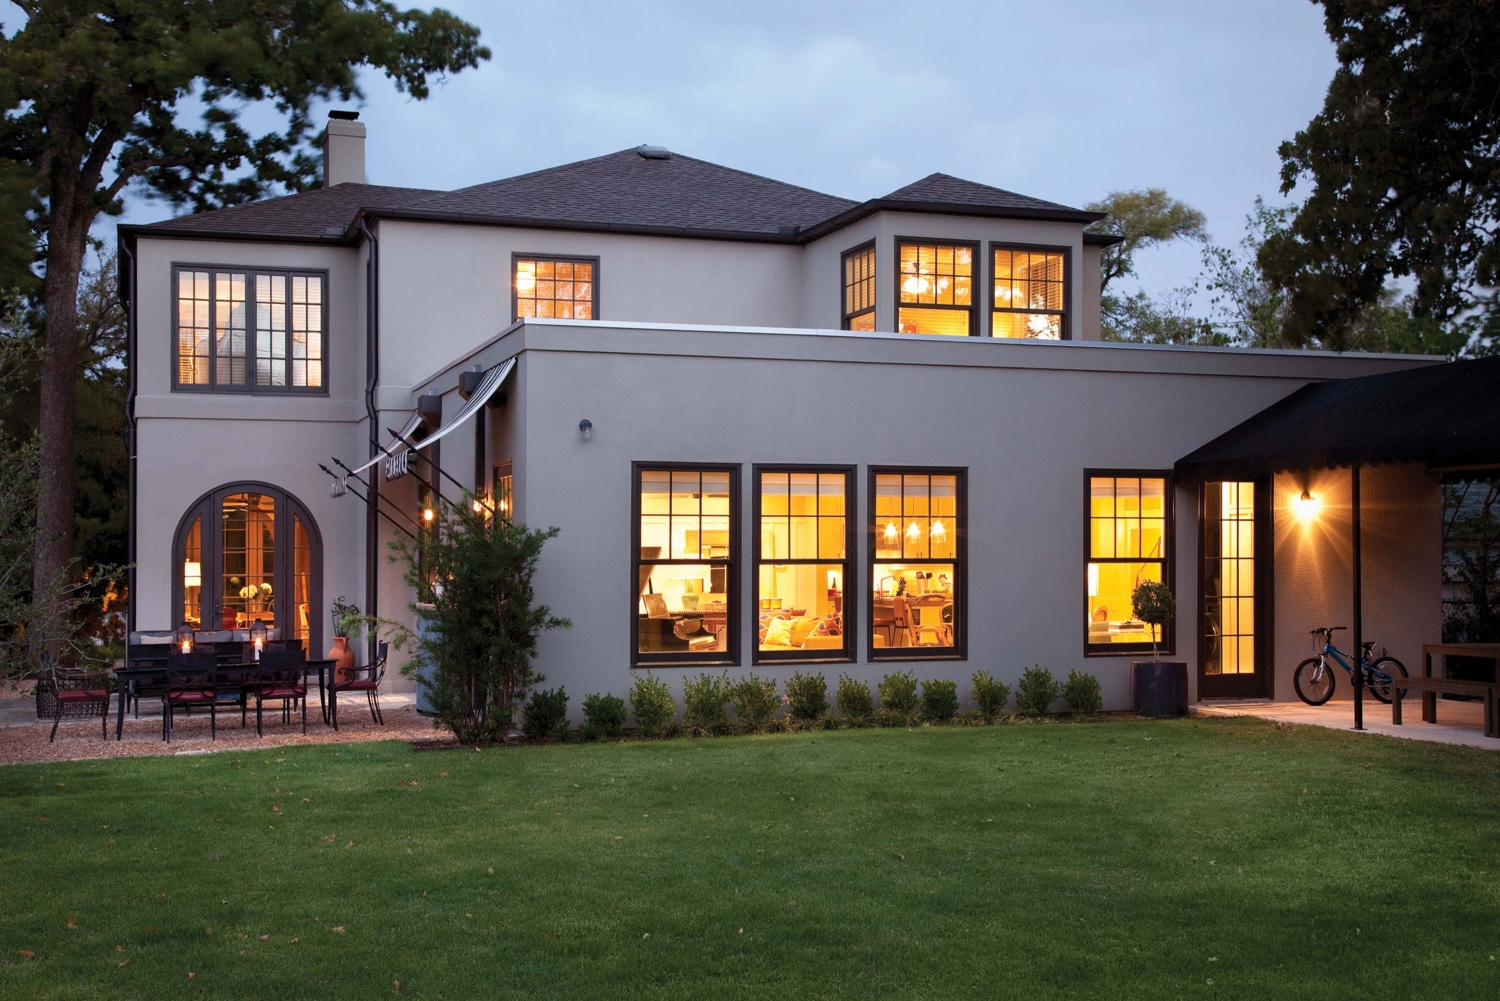 stucco siding cost plus pros and cons home remodeling costs guide. Black Bedroom Furniture Sets. Home Design Ideas